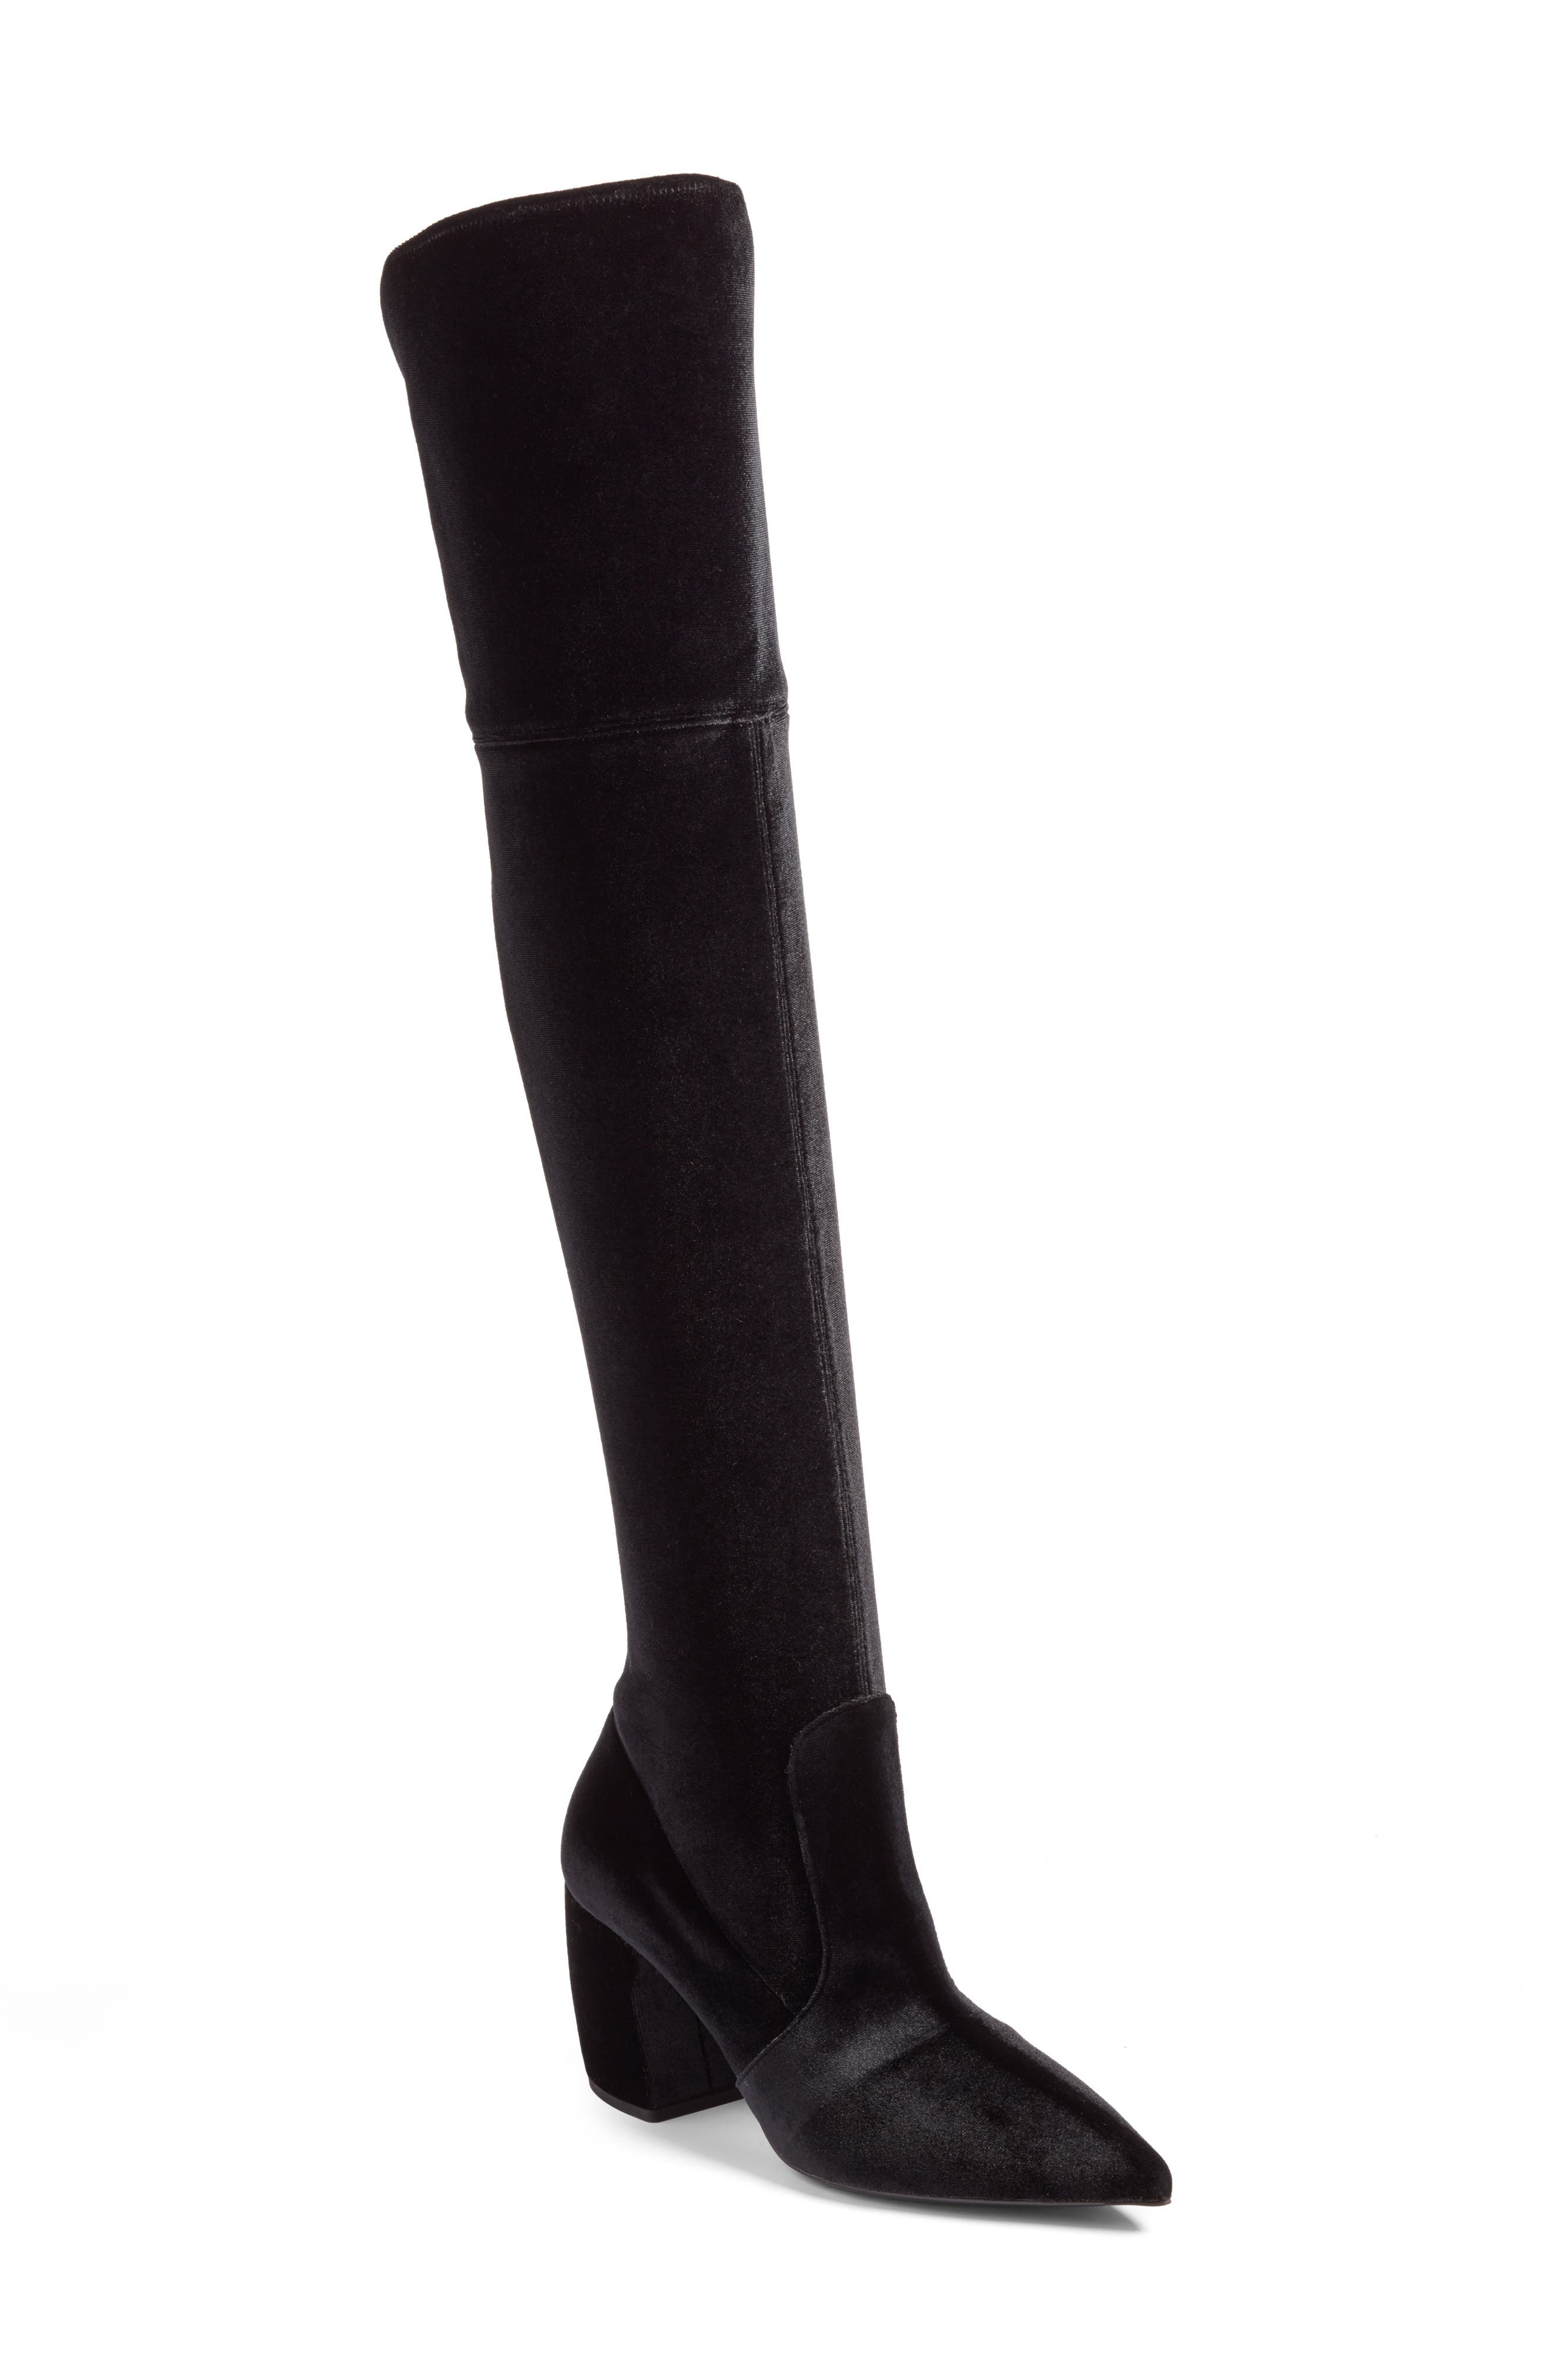 Over the Knee Boot,                             Main thumbnail 1, color,